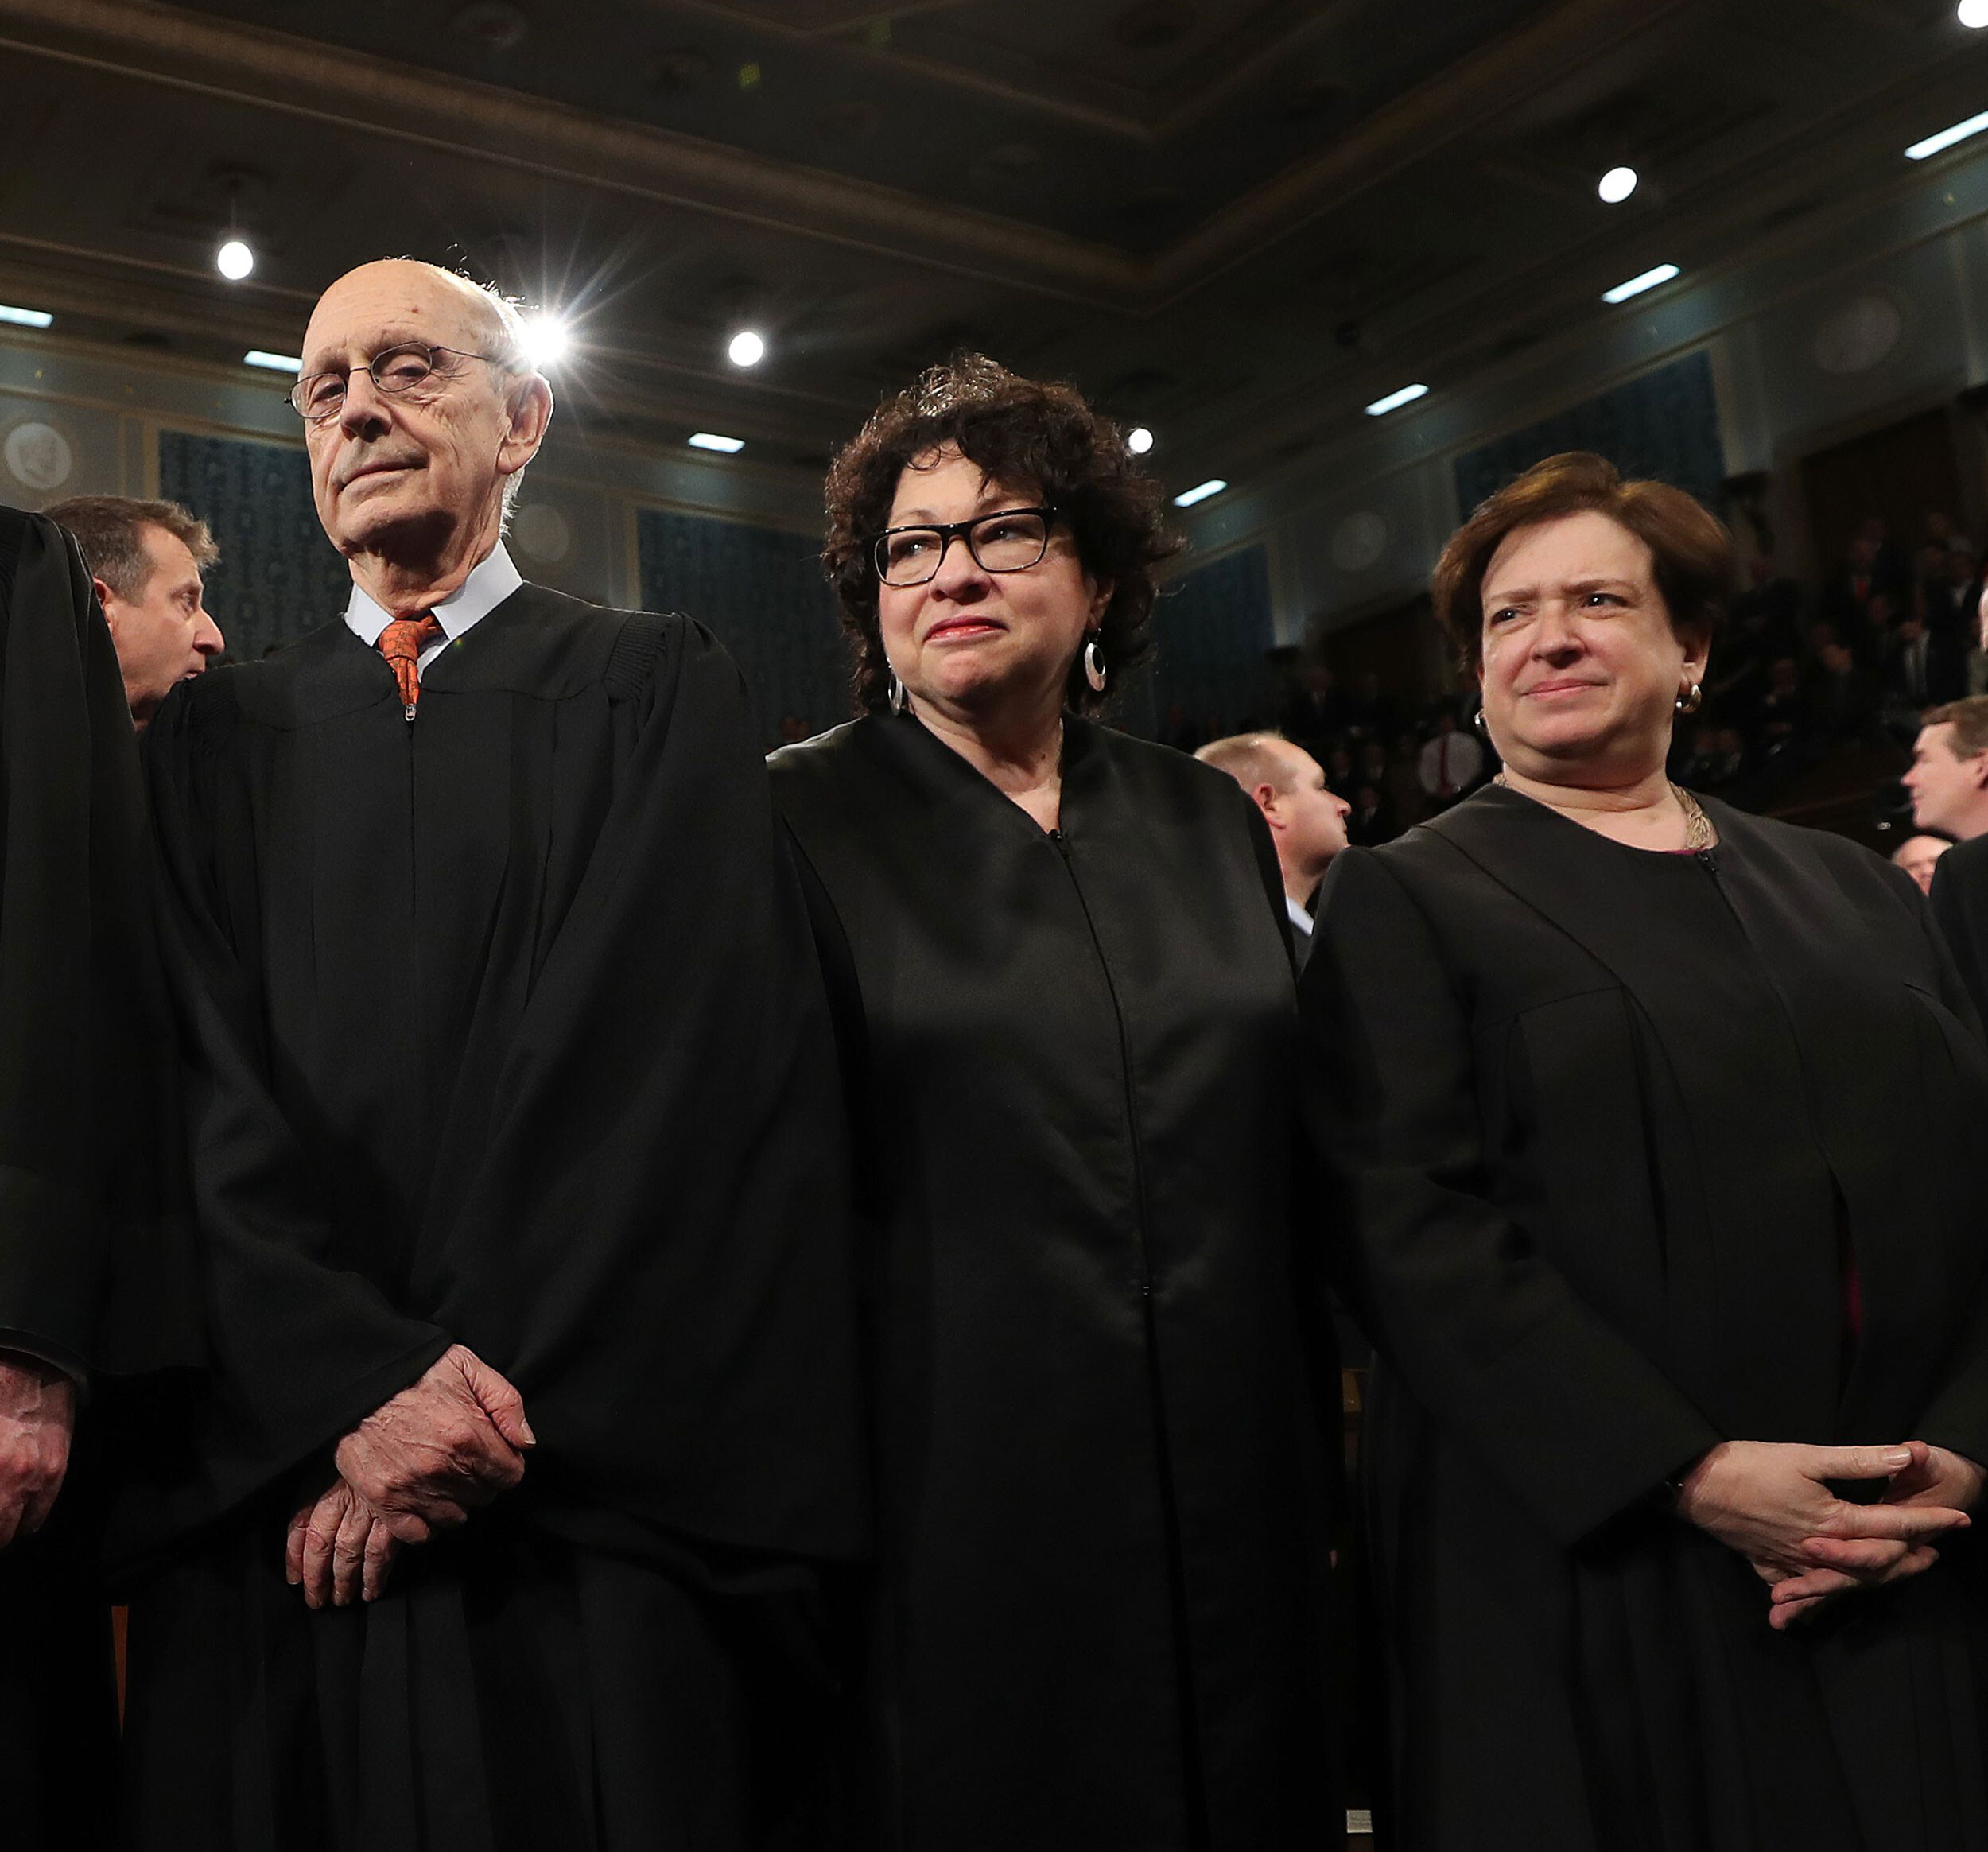 It's a liberals' lament at the Supreme Court now for Breyer, Sotomayor and Kagan